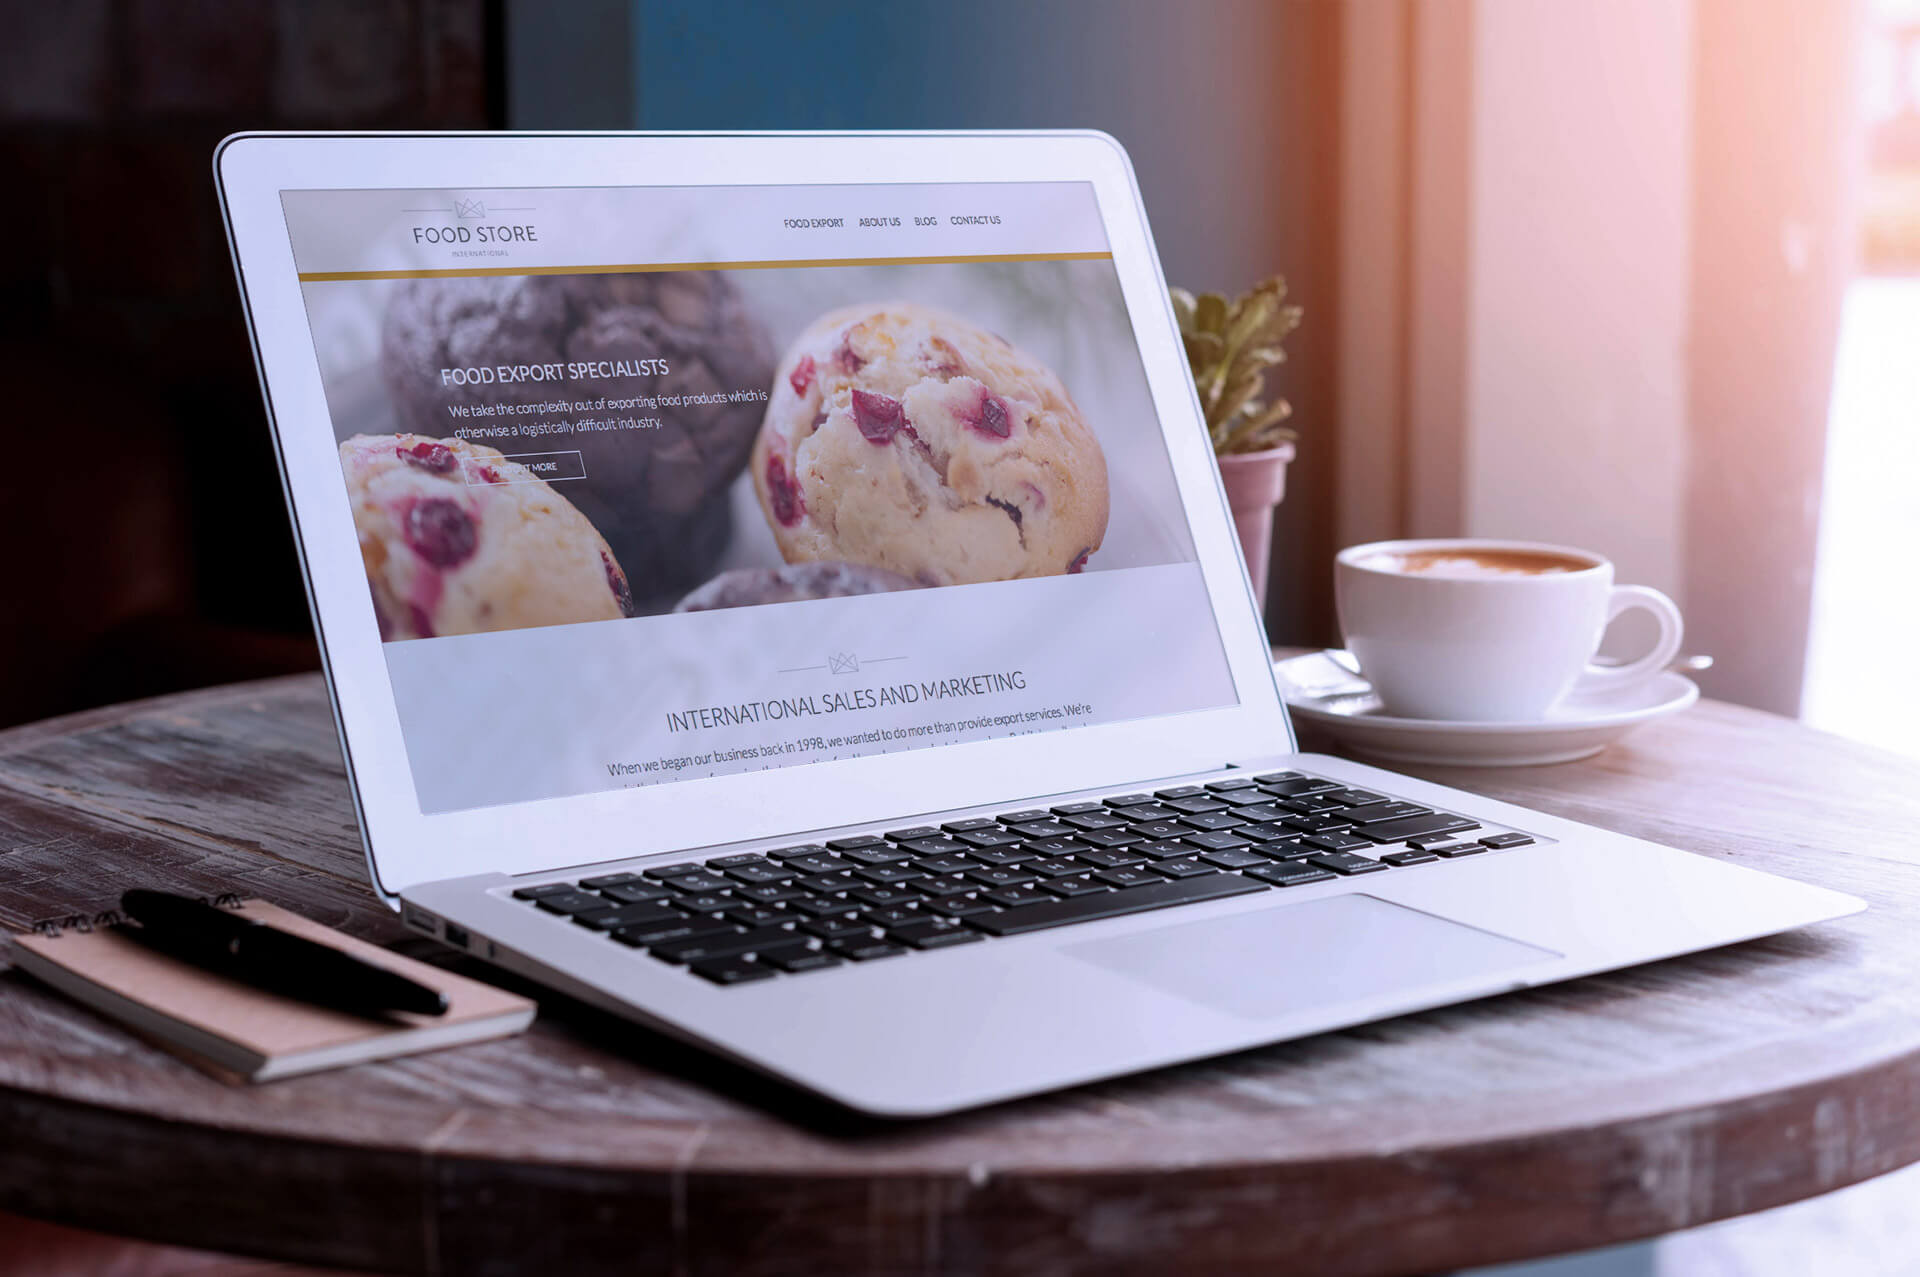 foodstore website design on macbook